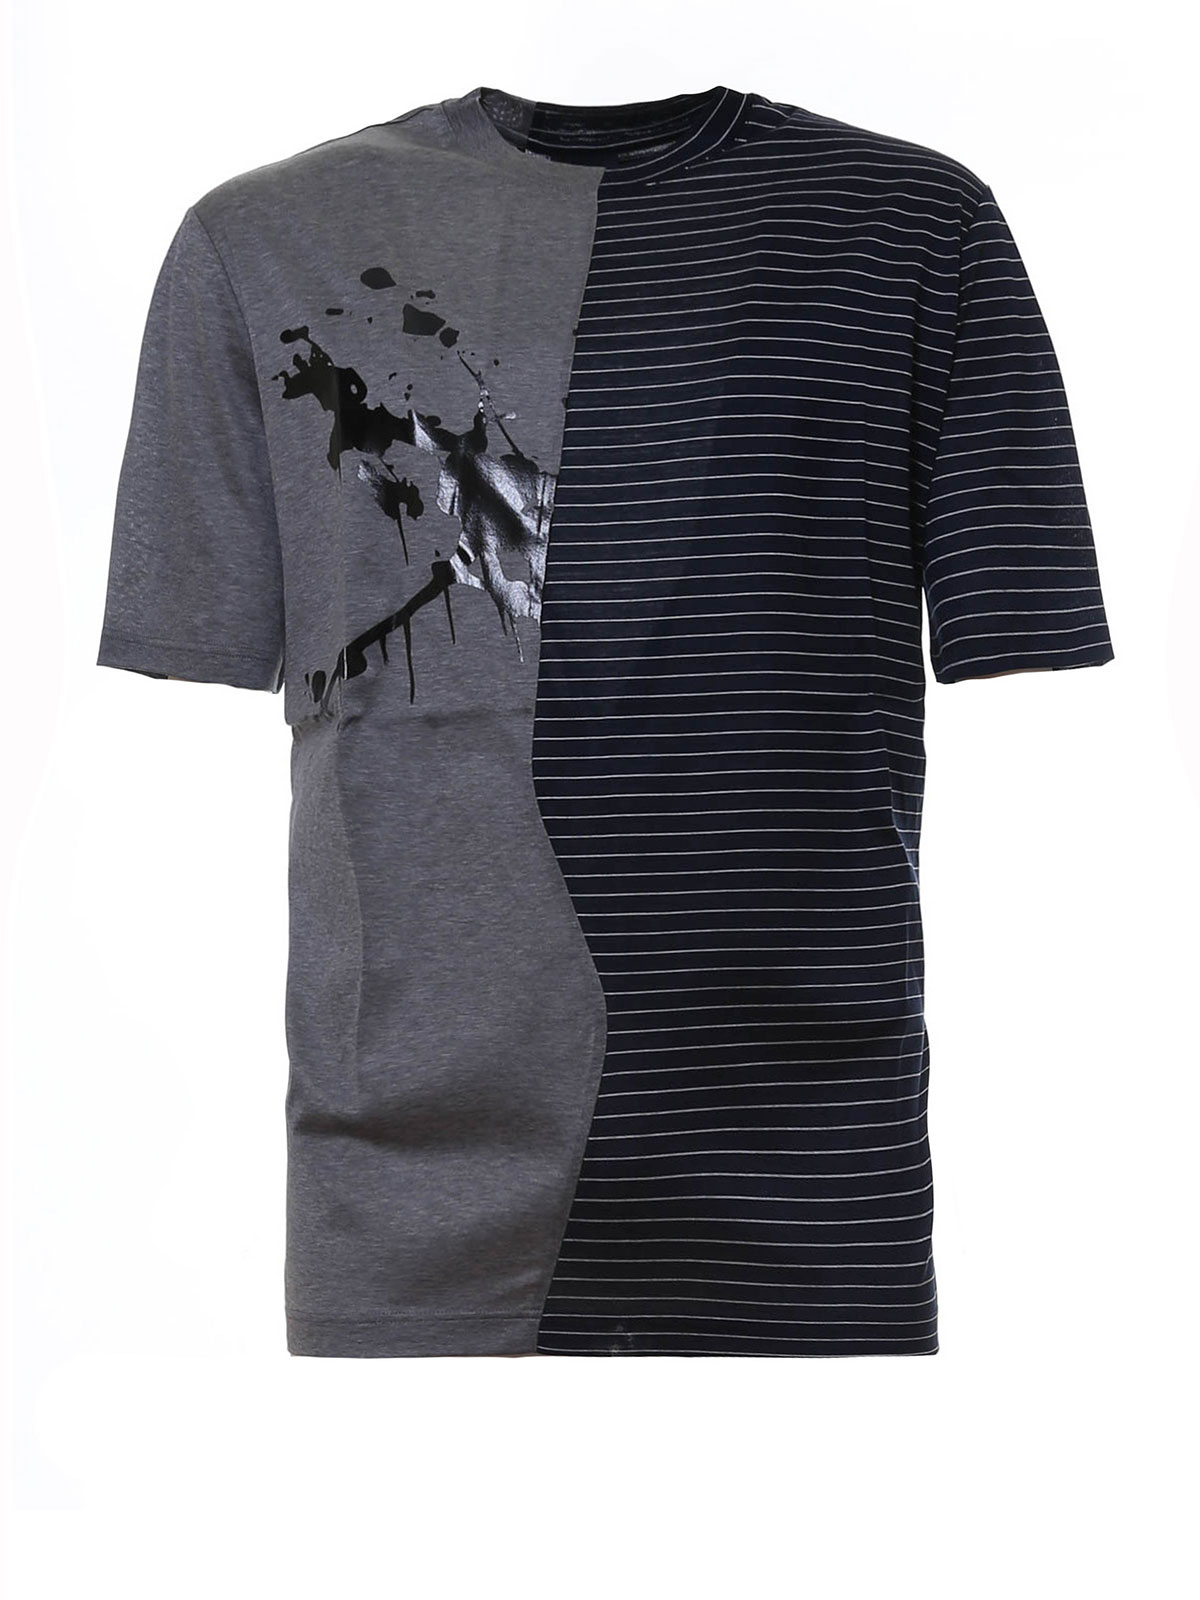 Lanvin - Stripes and ink stained T-shirt - t-shirts ... - photo#2